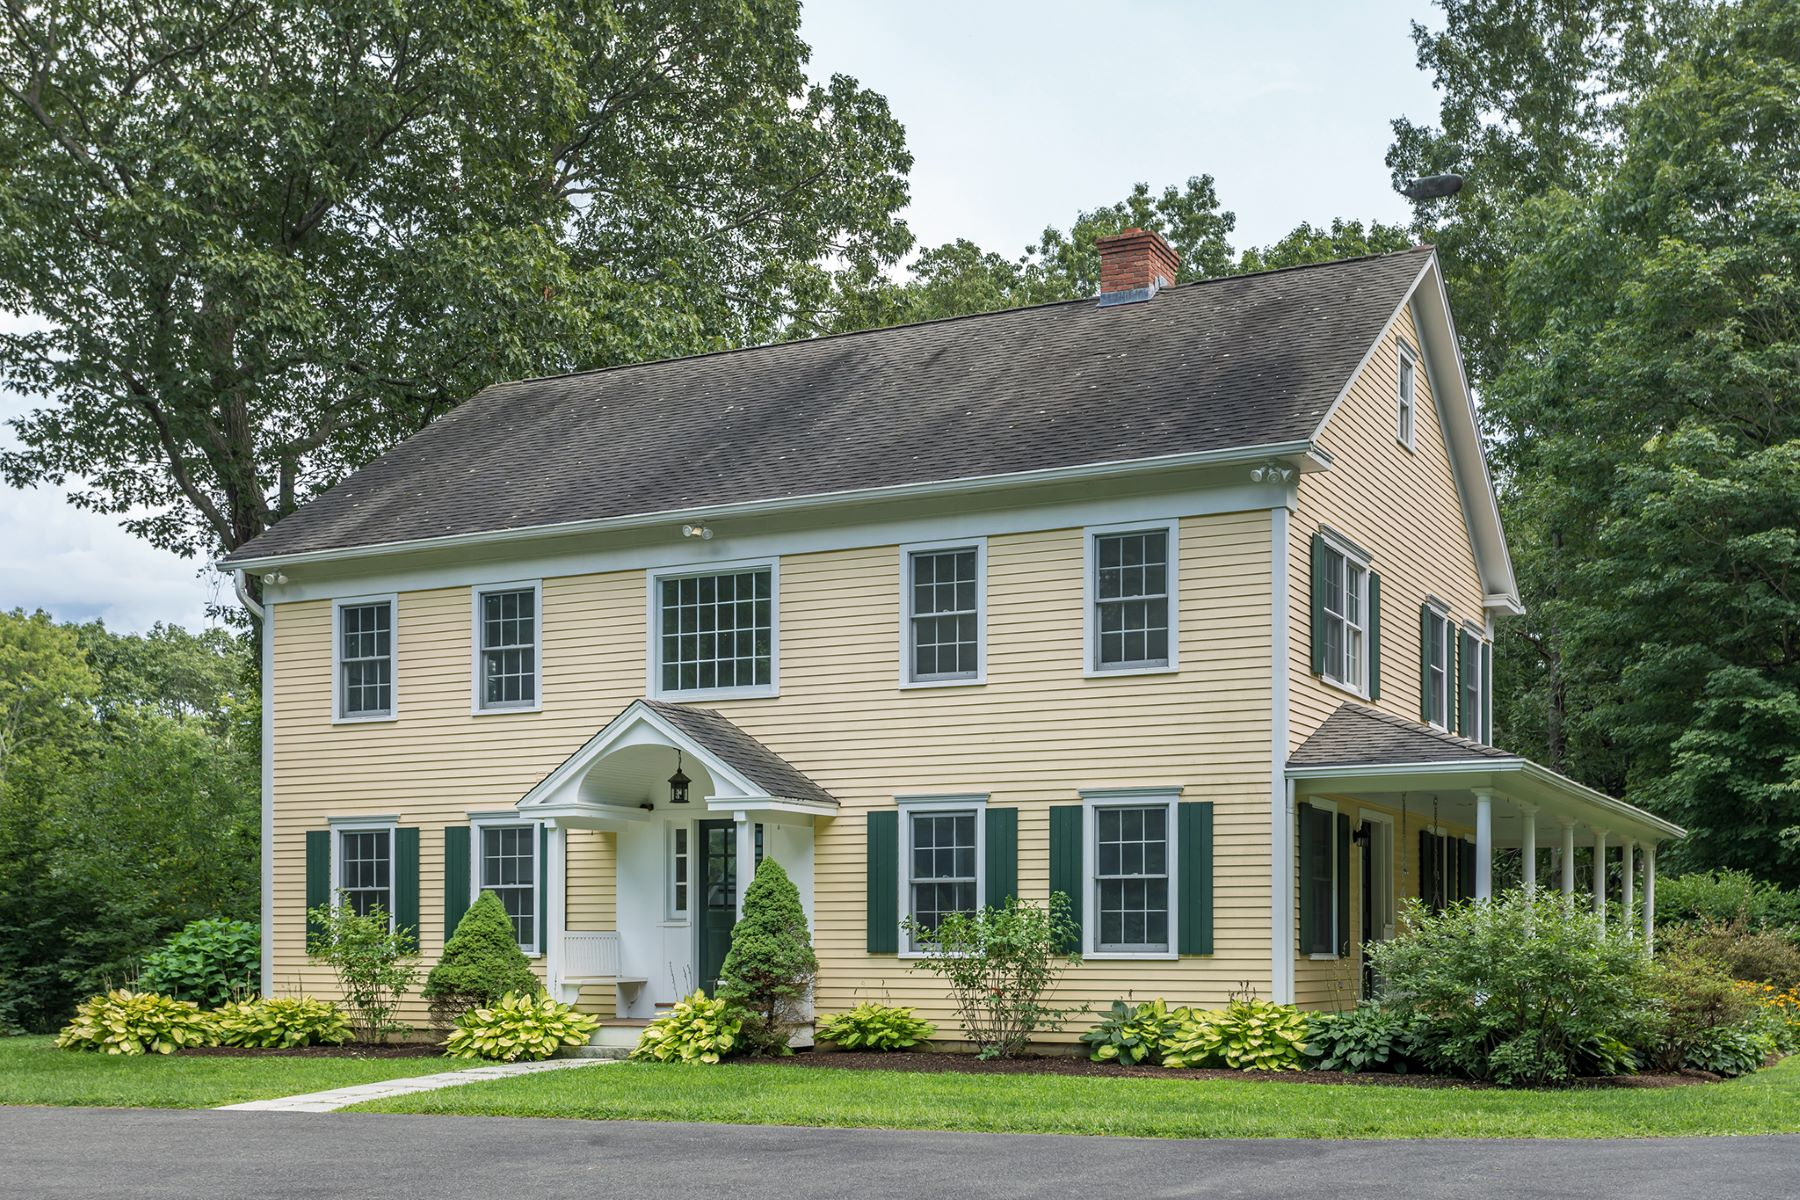 Single Family Homes for Sale at 154 Painter Hill Road 154 Painter Hill Rd Roxbury, Connecticut 06783 United States